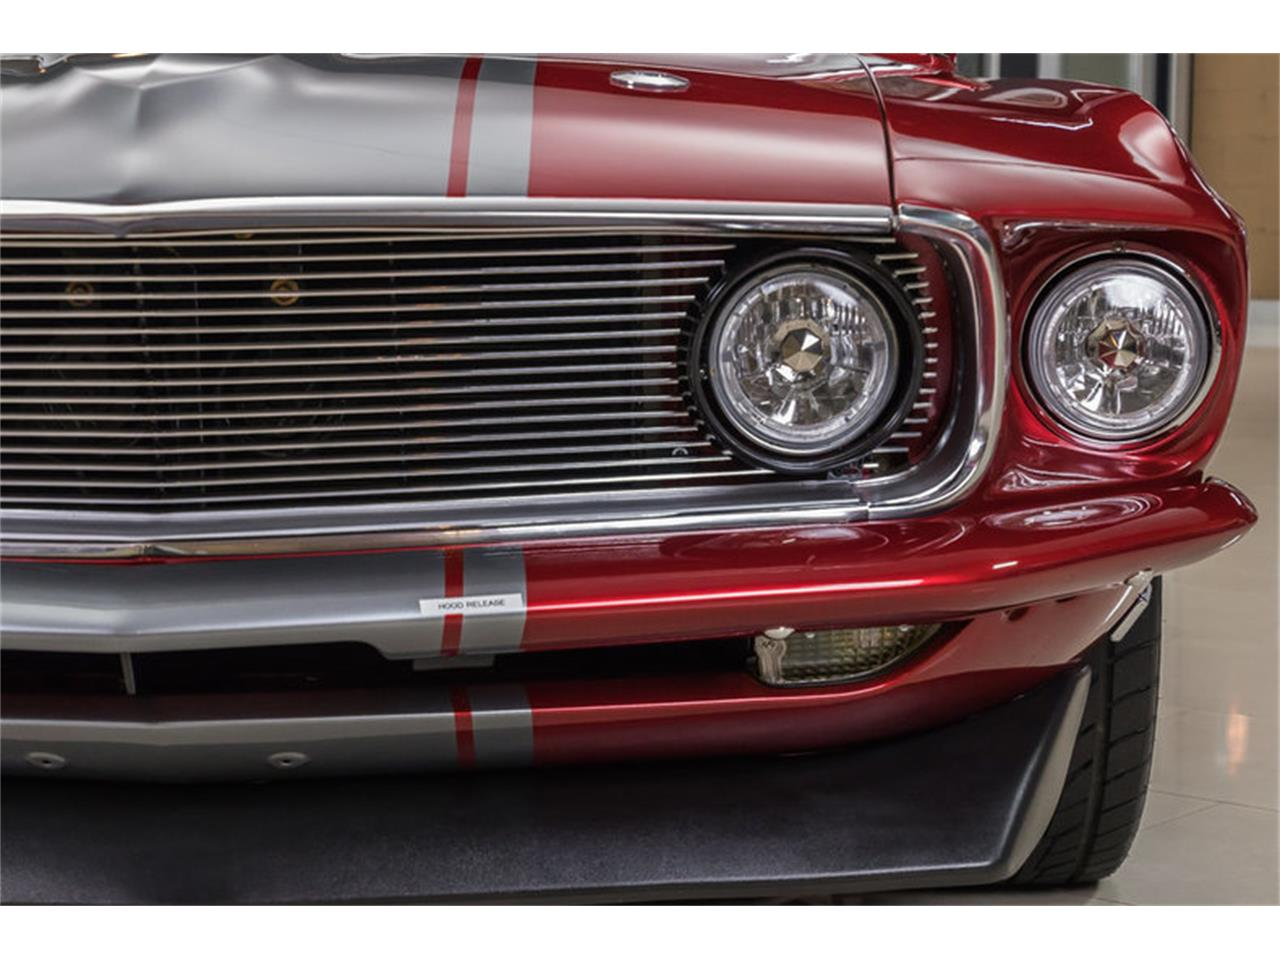 Large Picture of Classic 1969 Ford Mustang Fastback Restomod located in Michigan Offered by Vanguard Motor Sales - L6C8